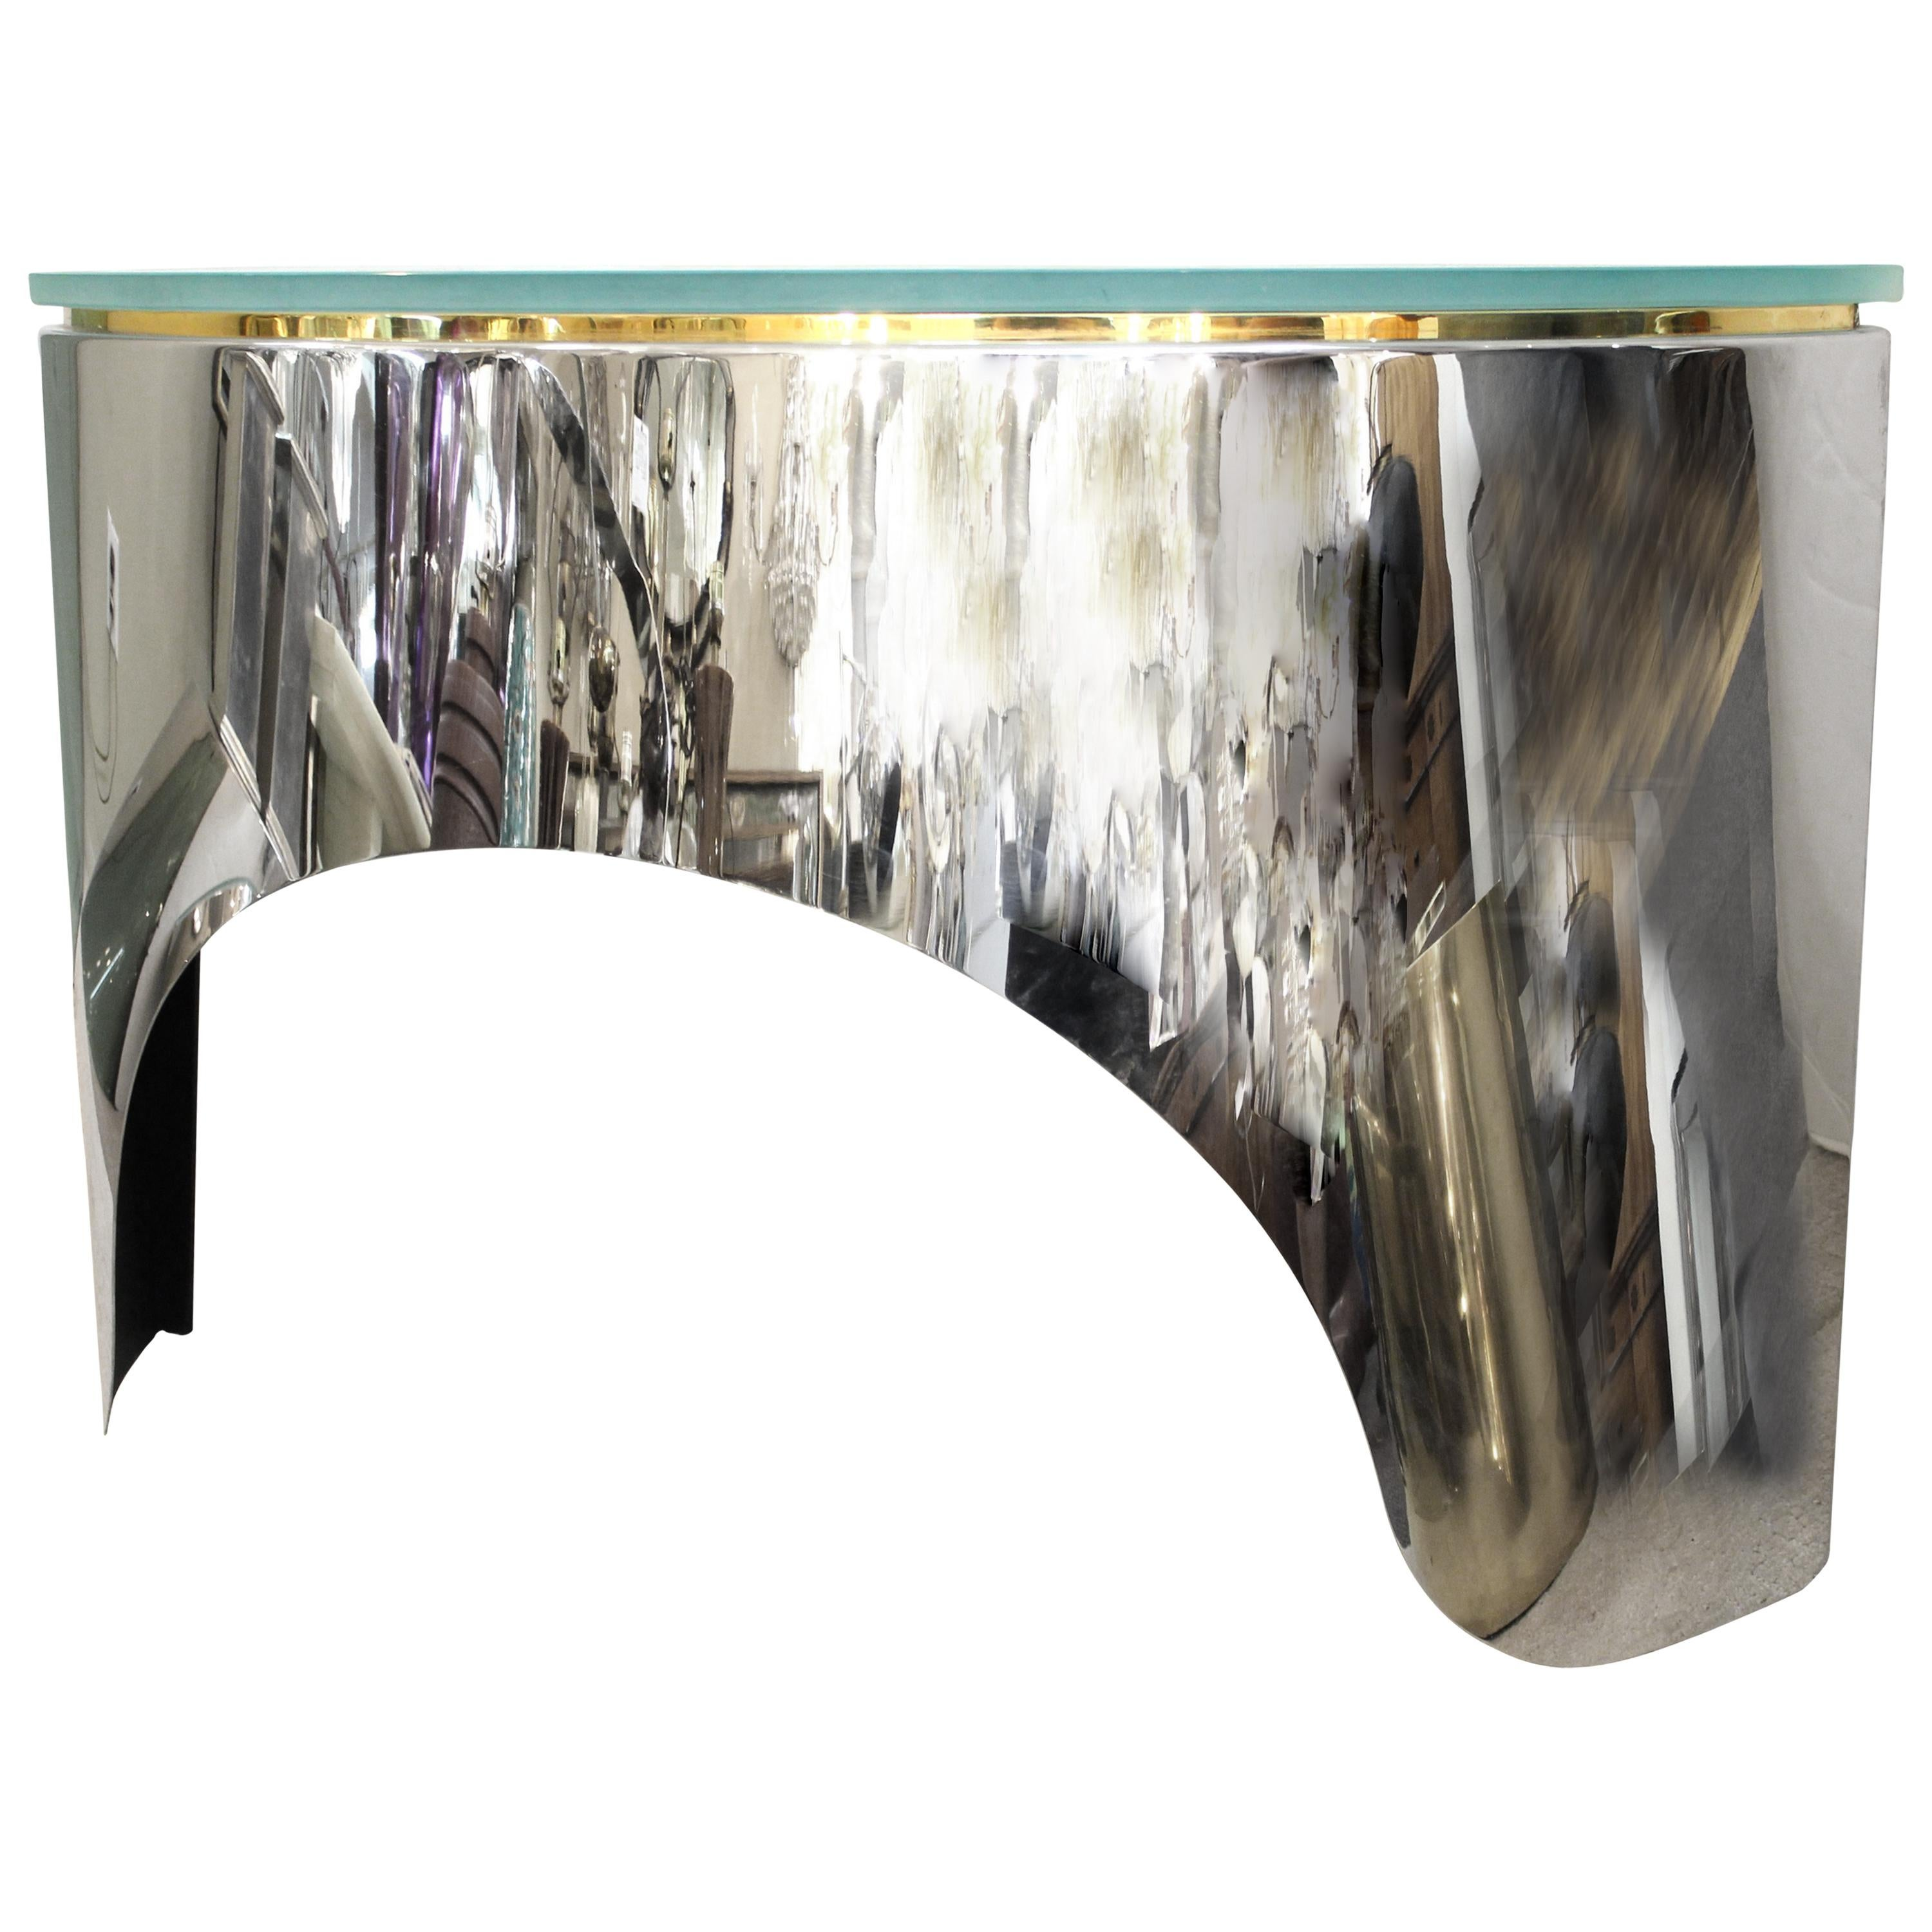 Pace Collection Mid-Century Modern Demi-Lune Sideboard in Metal & Glass